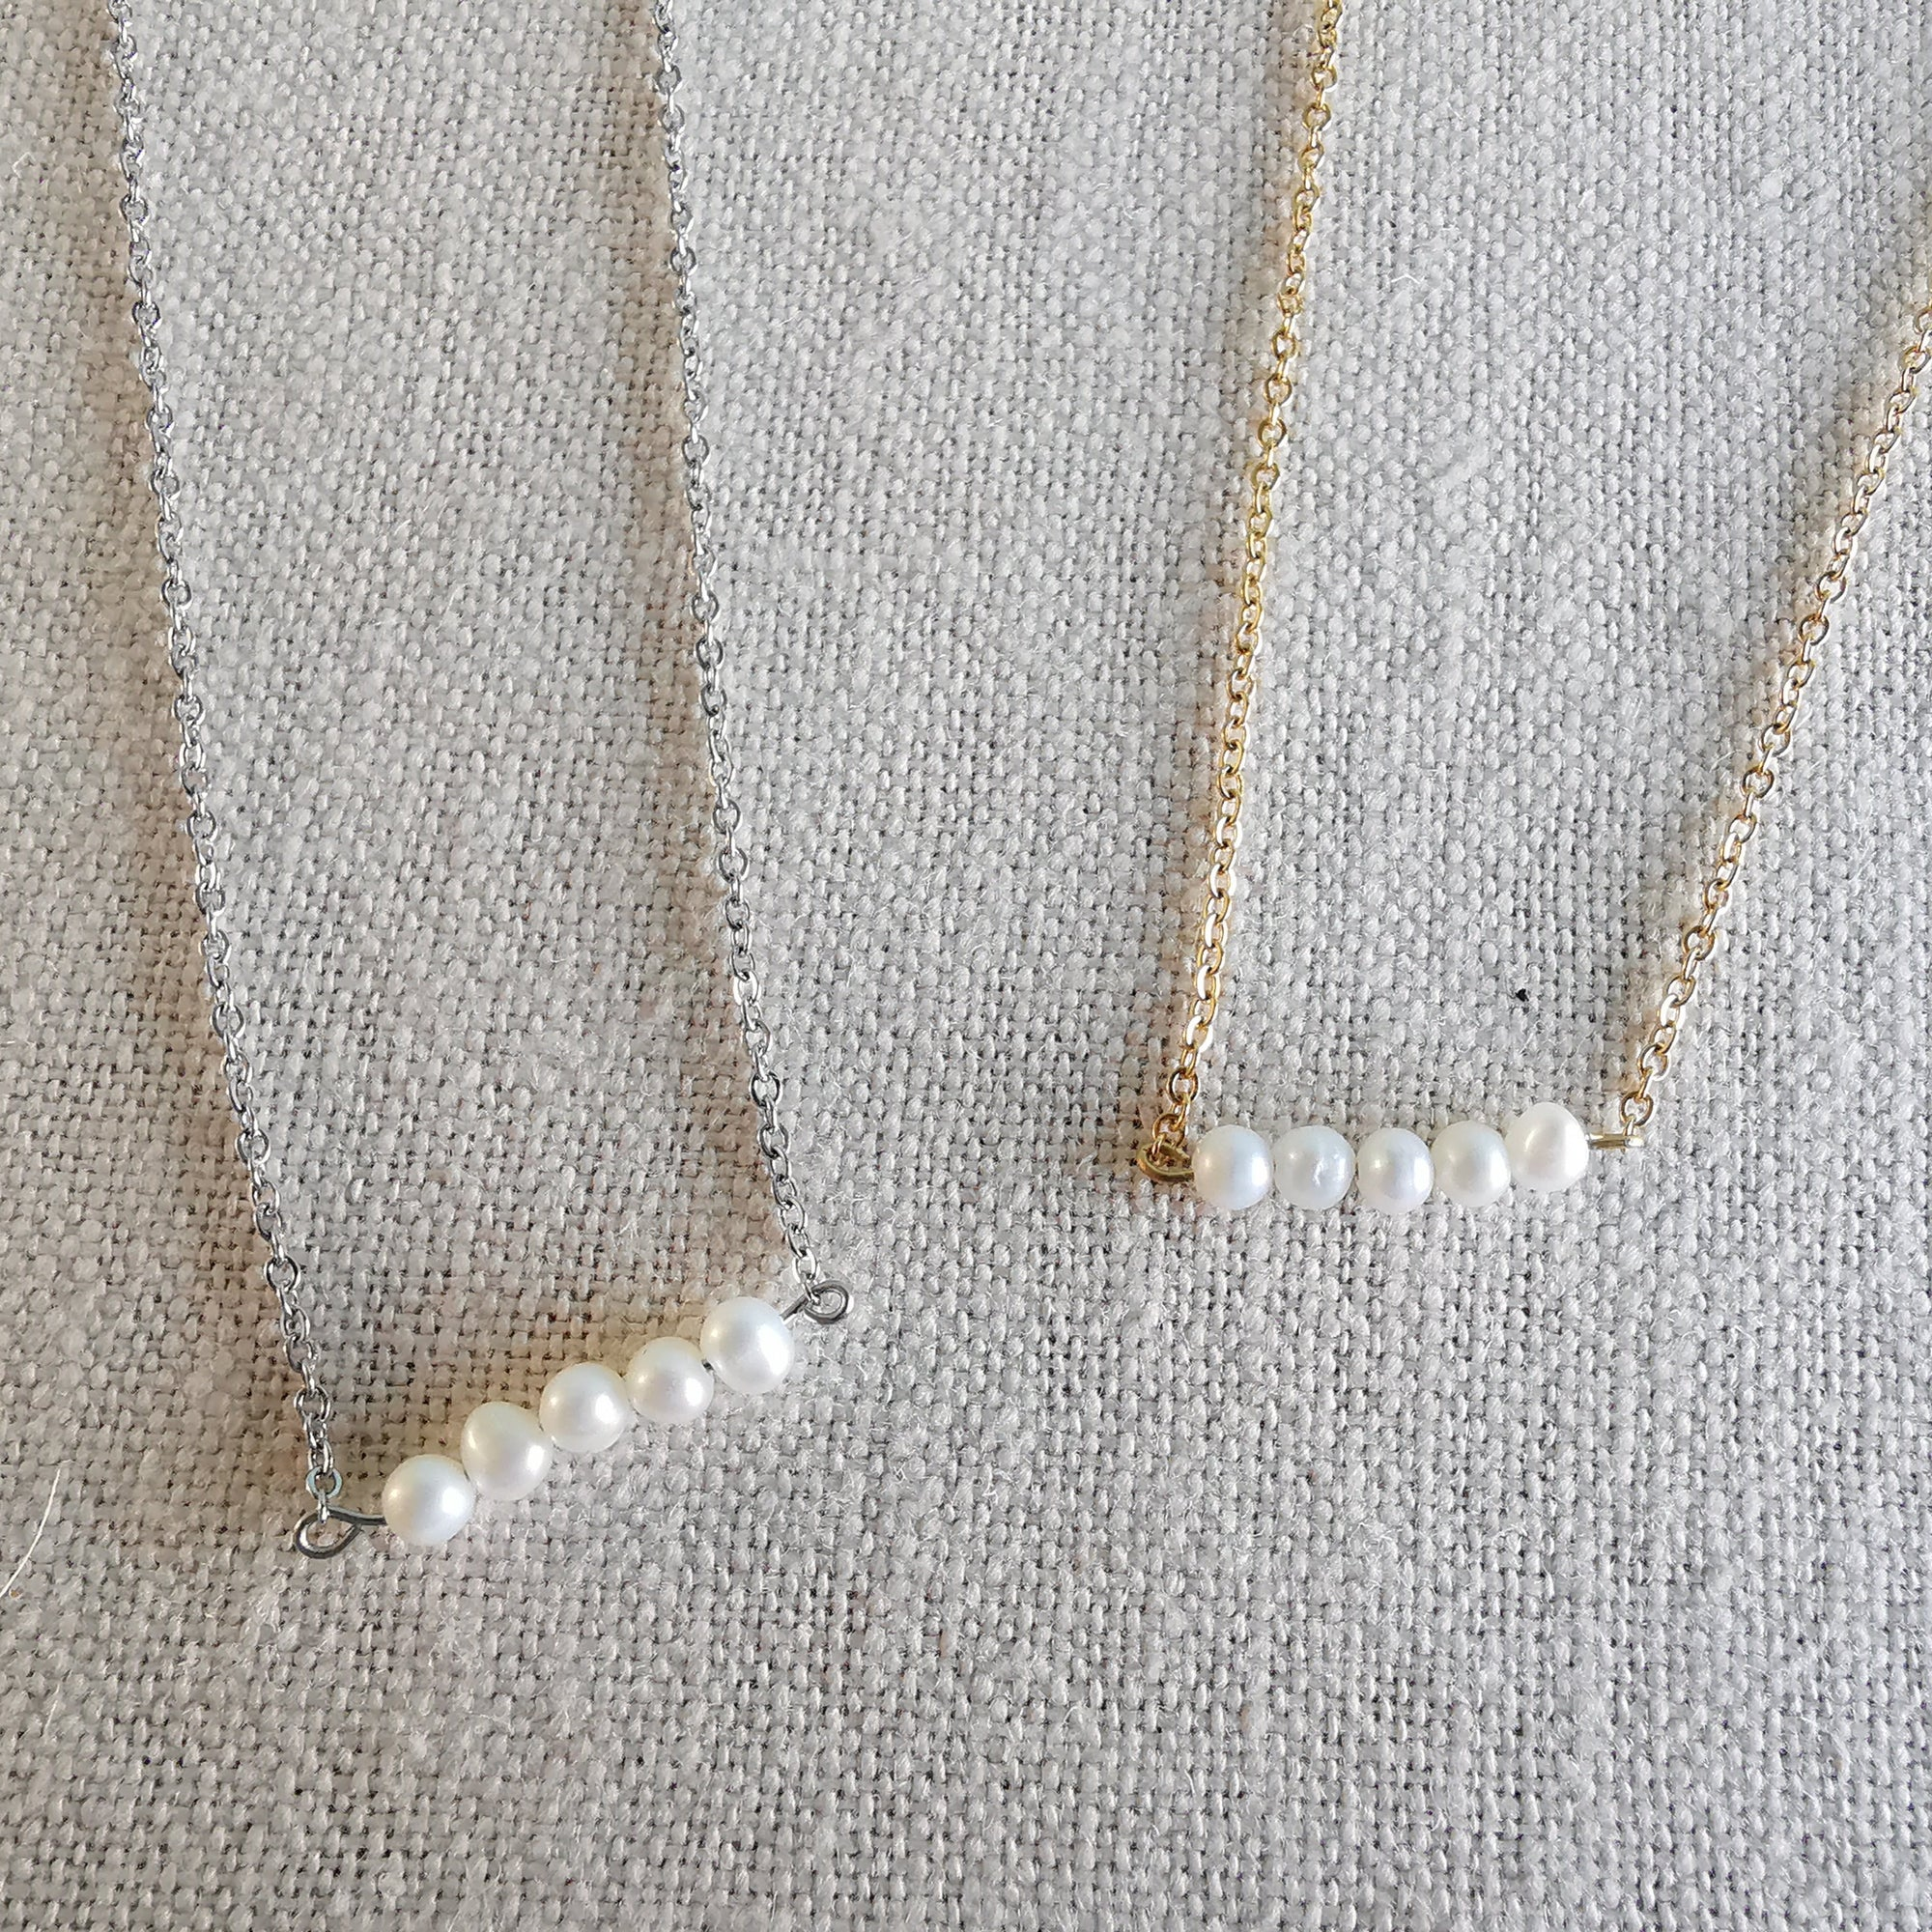 Handmade Dainty Natural Freshwater Pearl Necklace